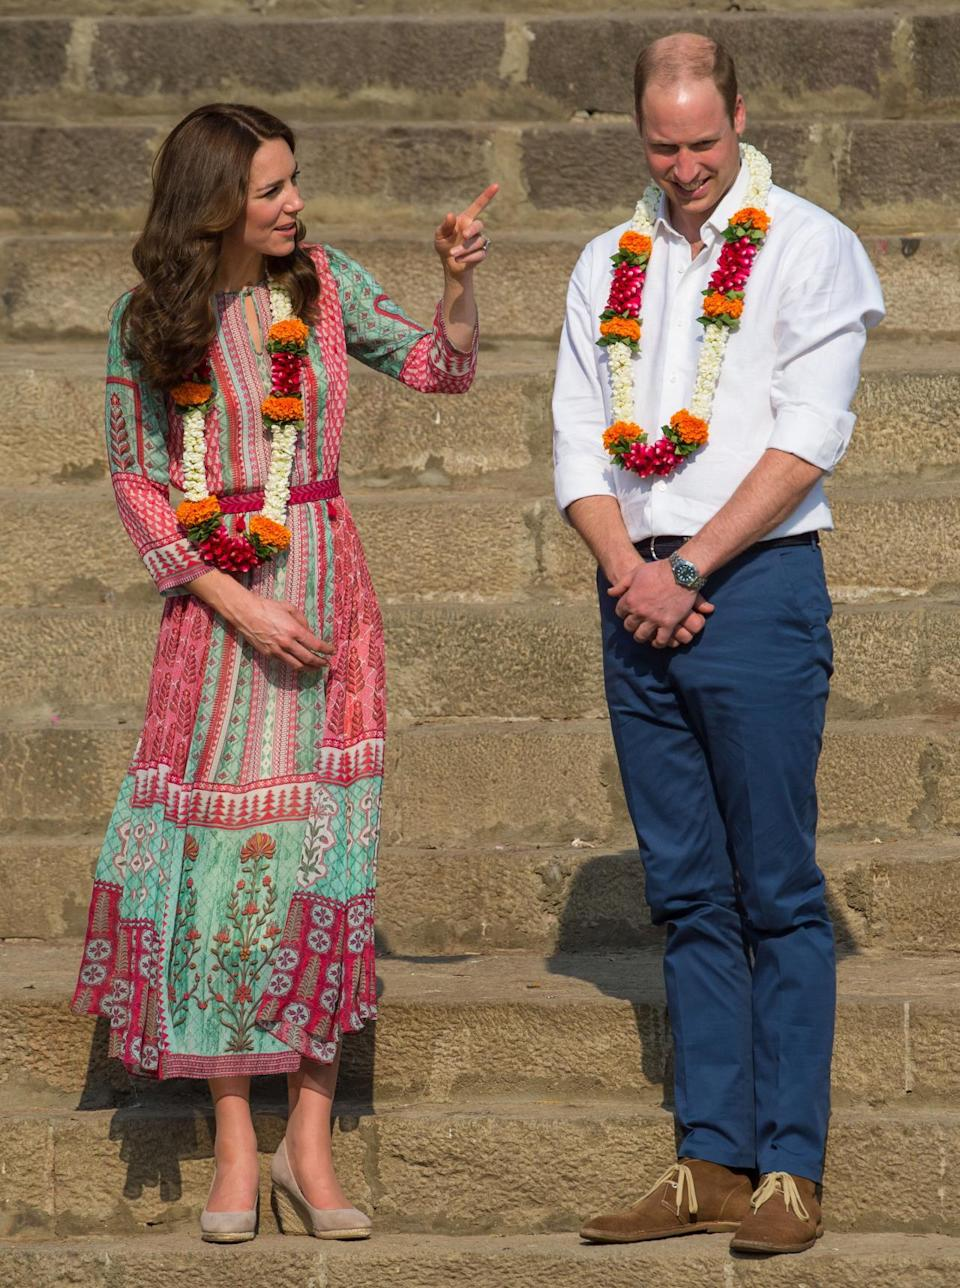 <p>On the first day of the royal tour to India, Kate opted for a printed dress by one of India's most renowned designers, Anita Dongre. She teamed the look with Monsoon wedges and £8 earrings from Accessorize.</p><p><i>[Photo: PA]</i></p>